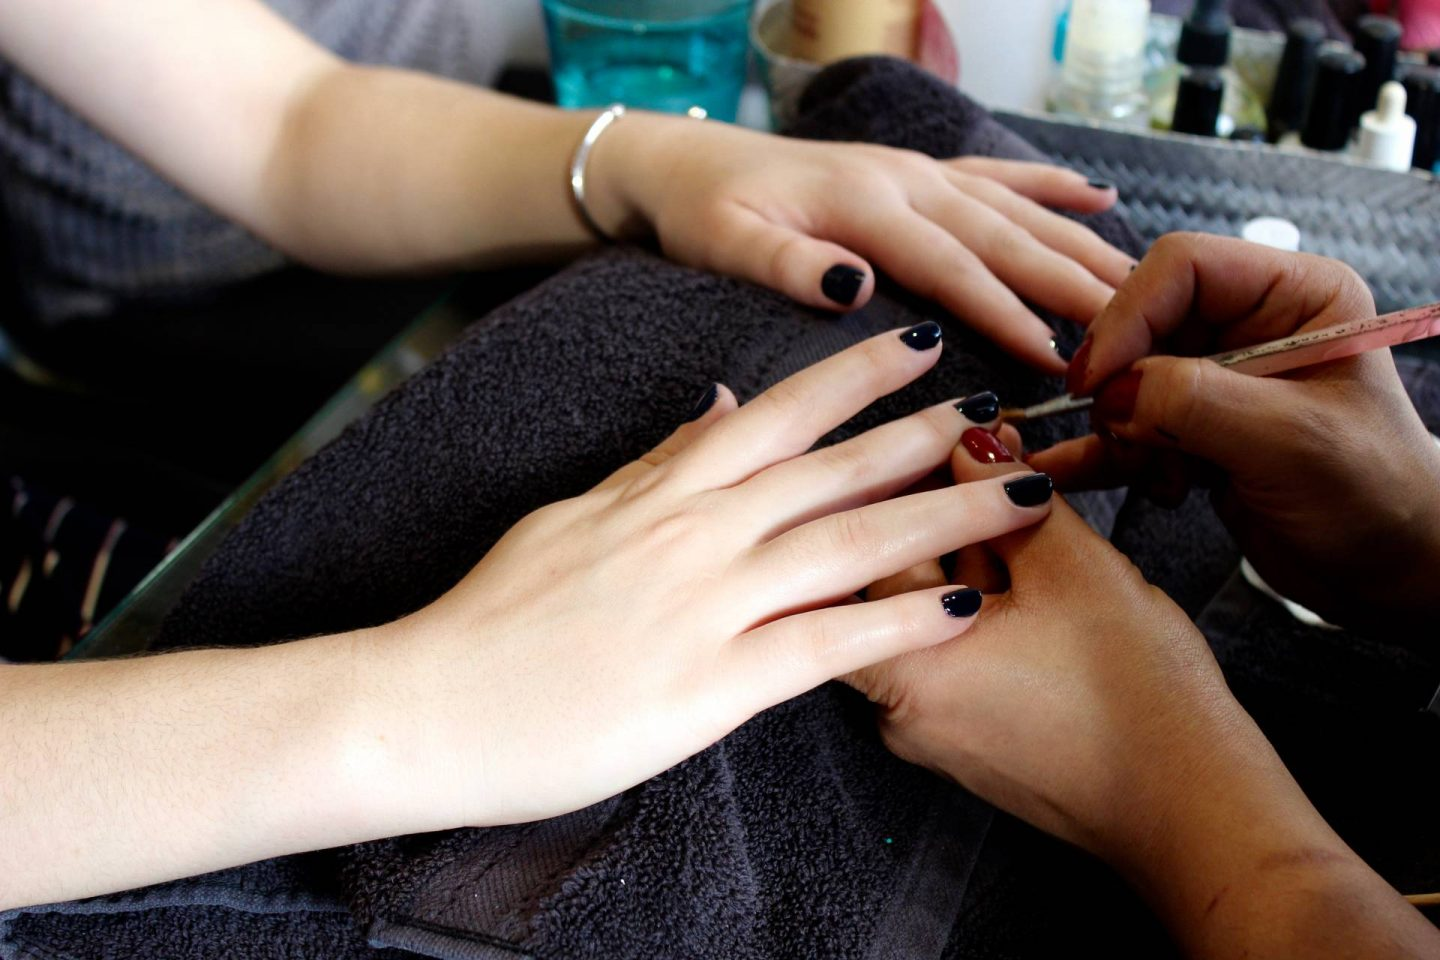 fe hair and beauty navy nails manicure